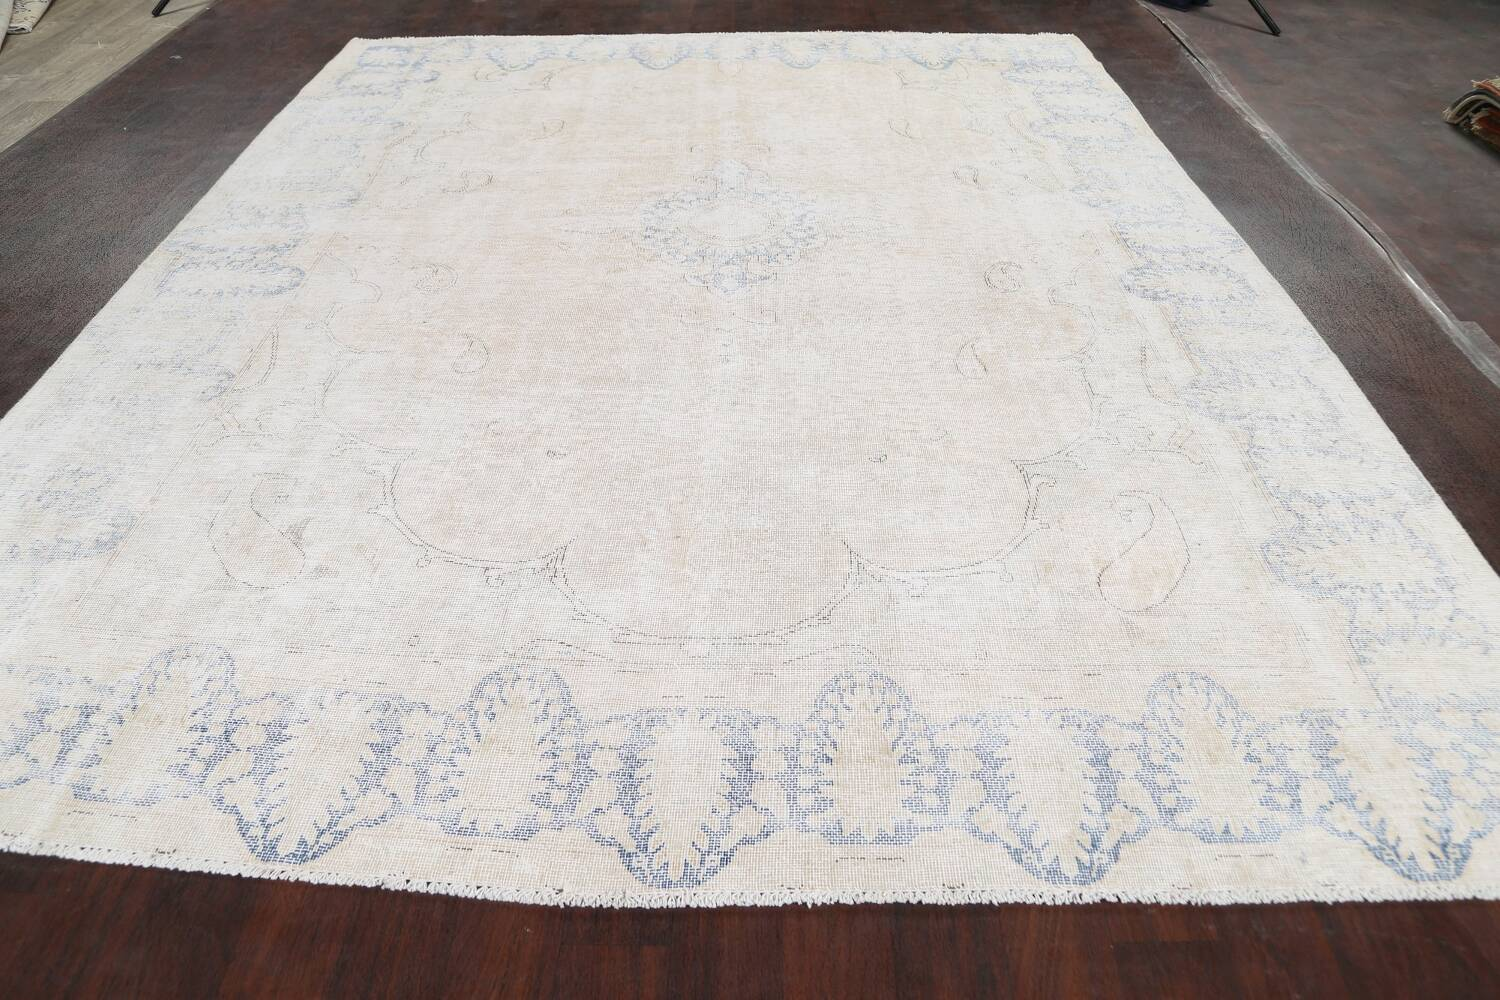 Antique Muted Distressed Kerman Persian Area Rug 9x11 image 15